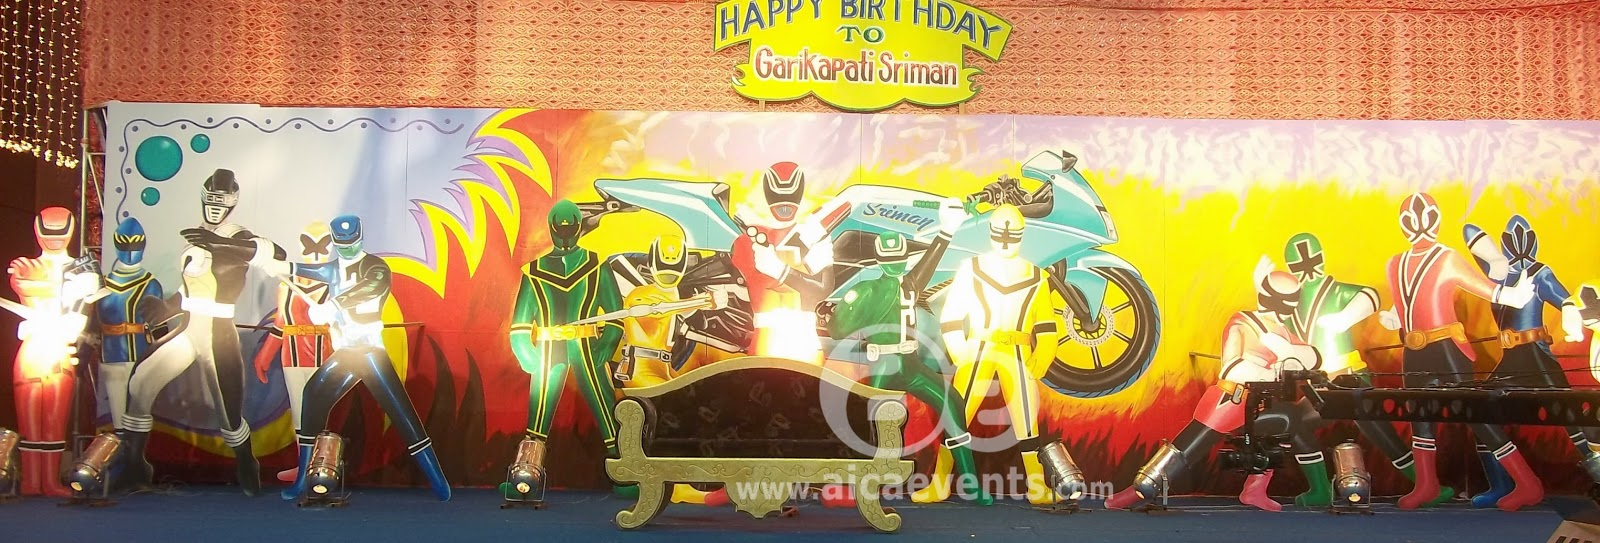 Aicaevents India: Power Rangers Theme party